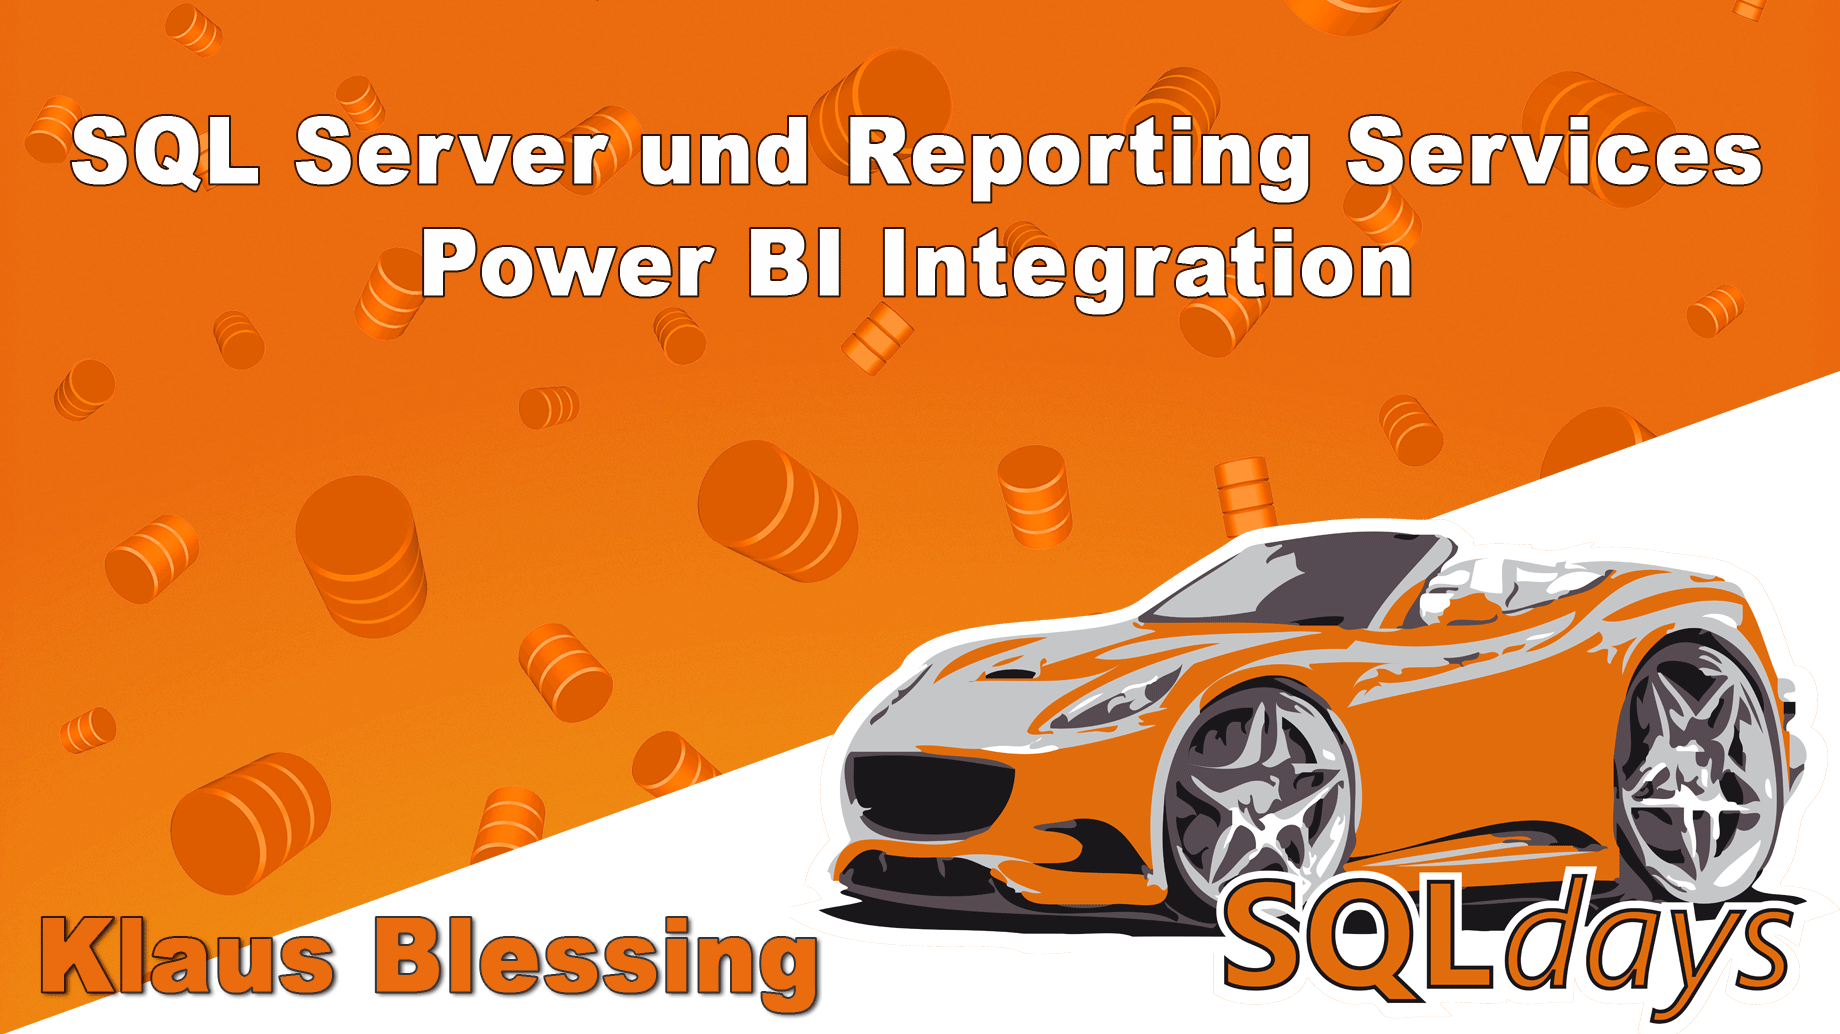 2017/SQLdays/Vortrag1-SQL-Server-Reporting-Services-KlausBlessing